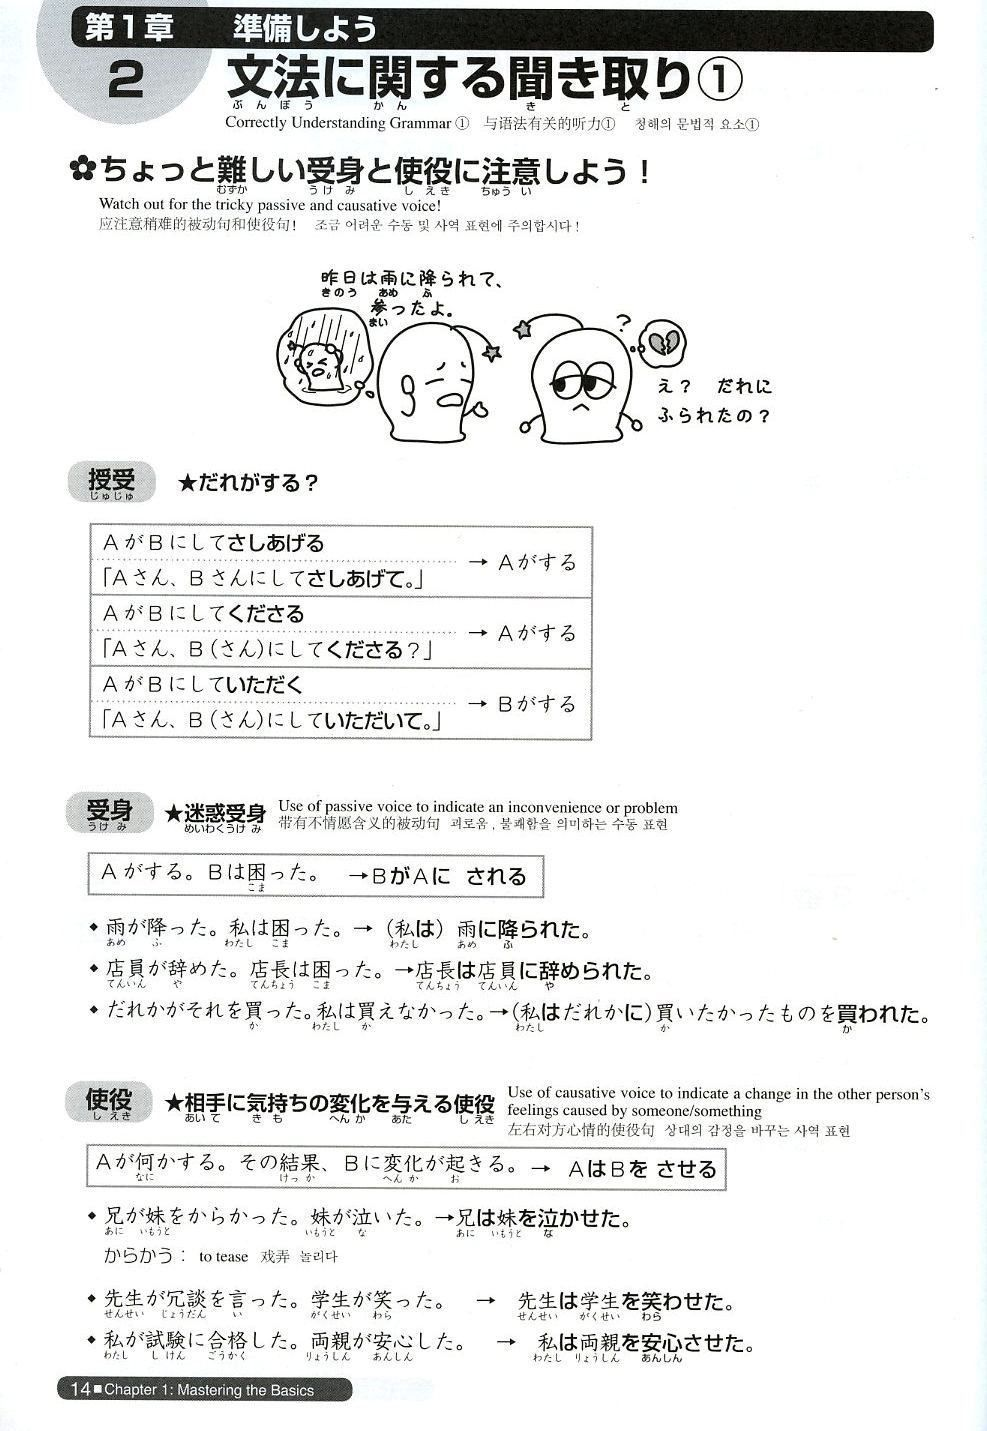 Nihongo So-matome JLPT N2: Listening Comprehension